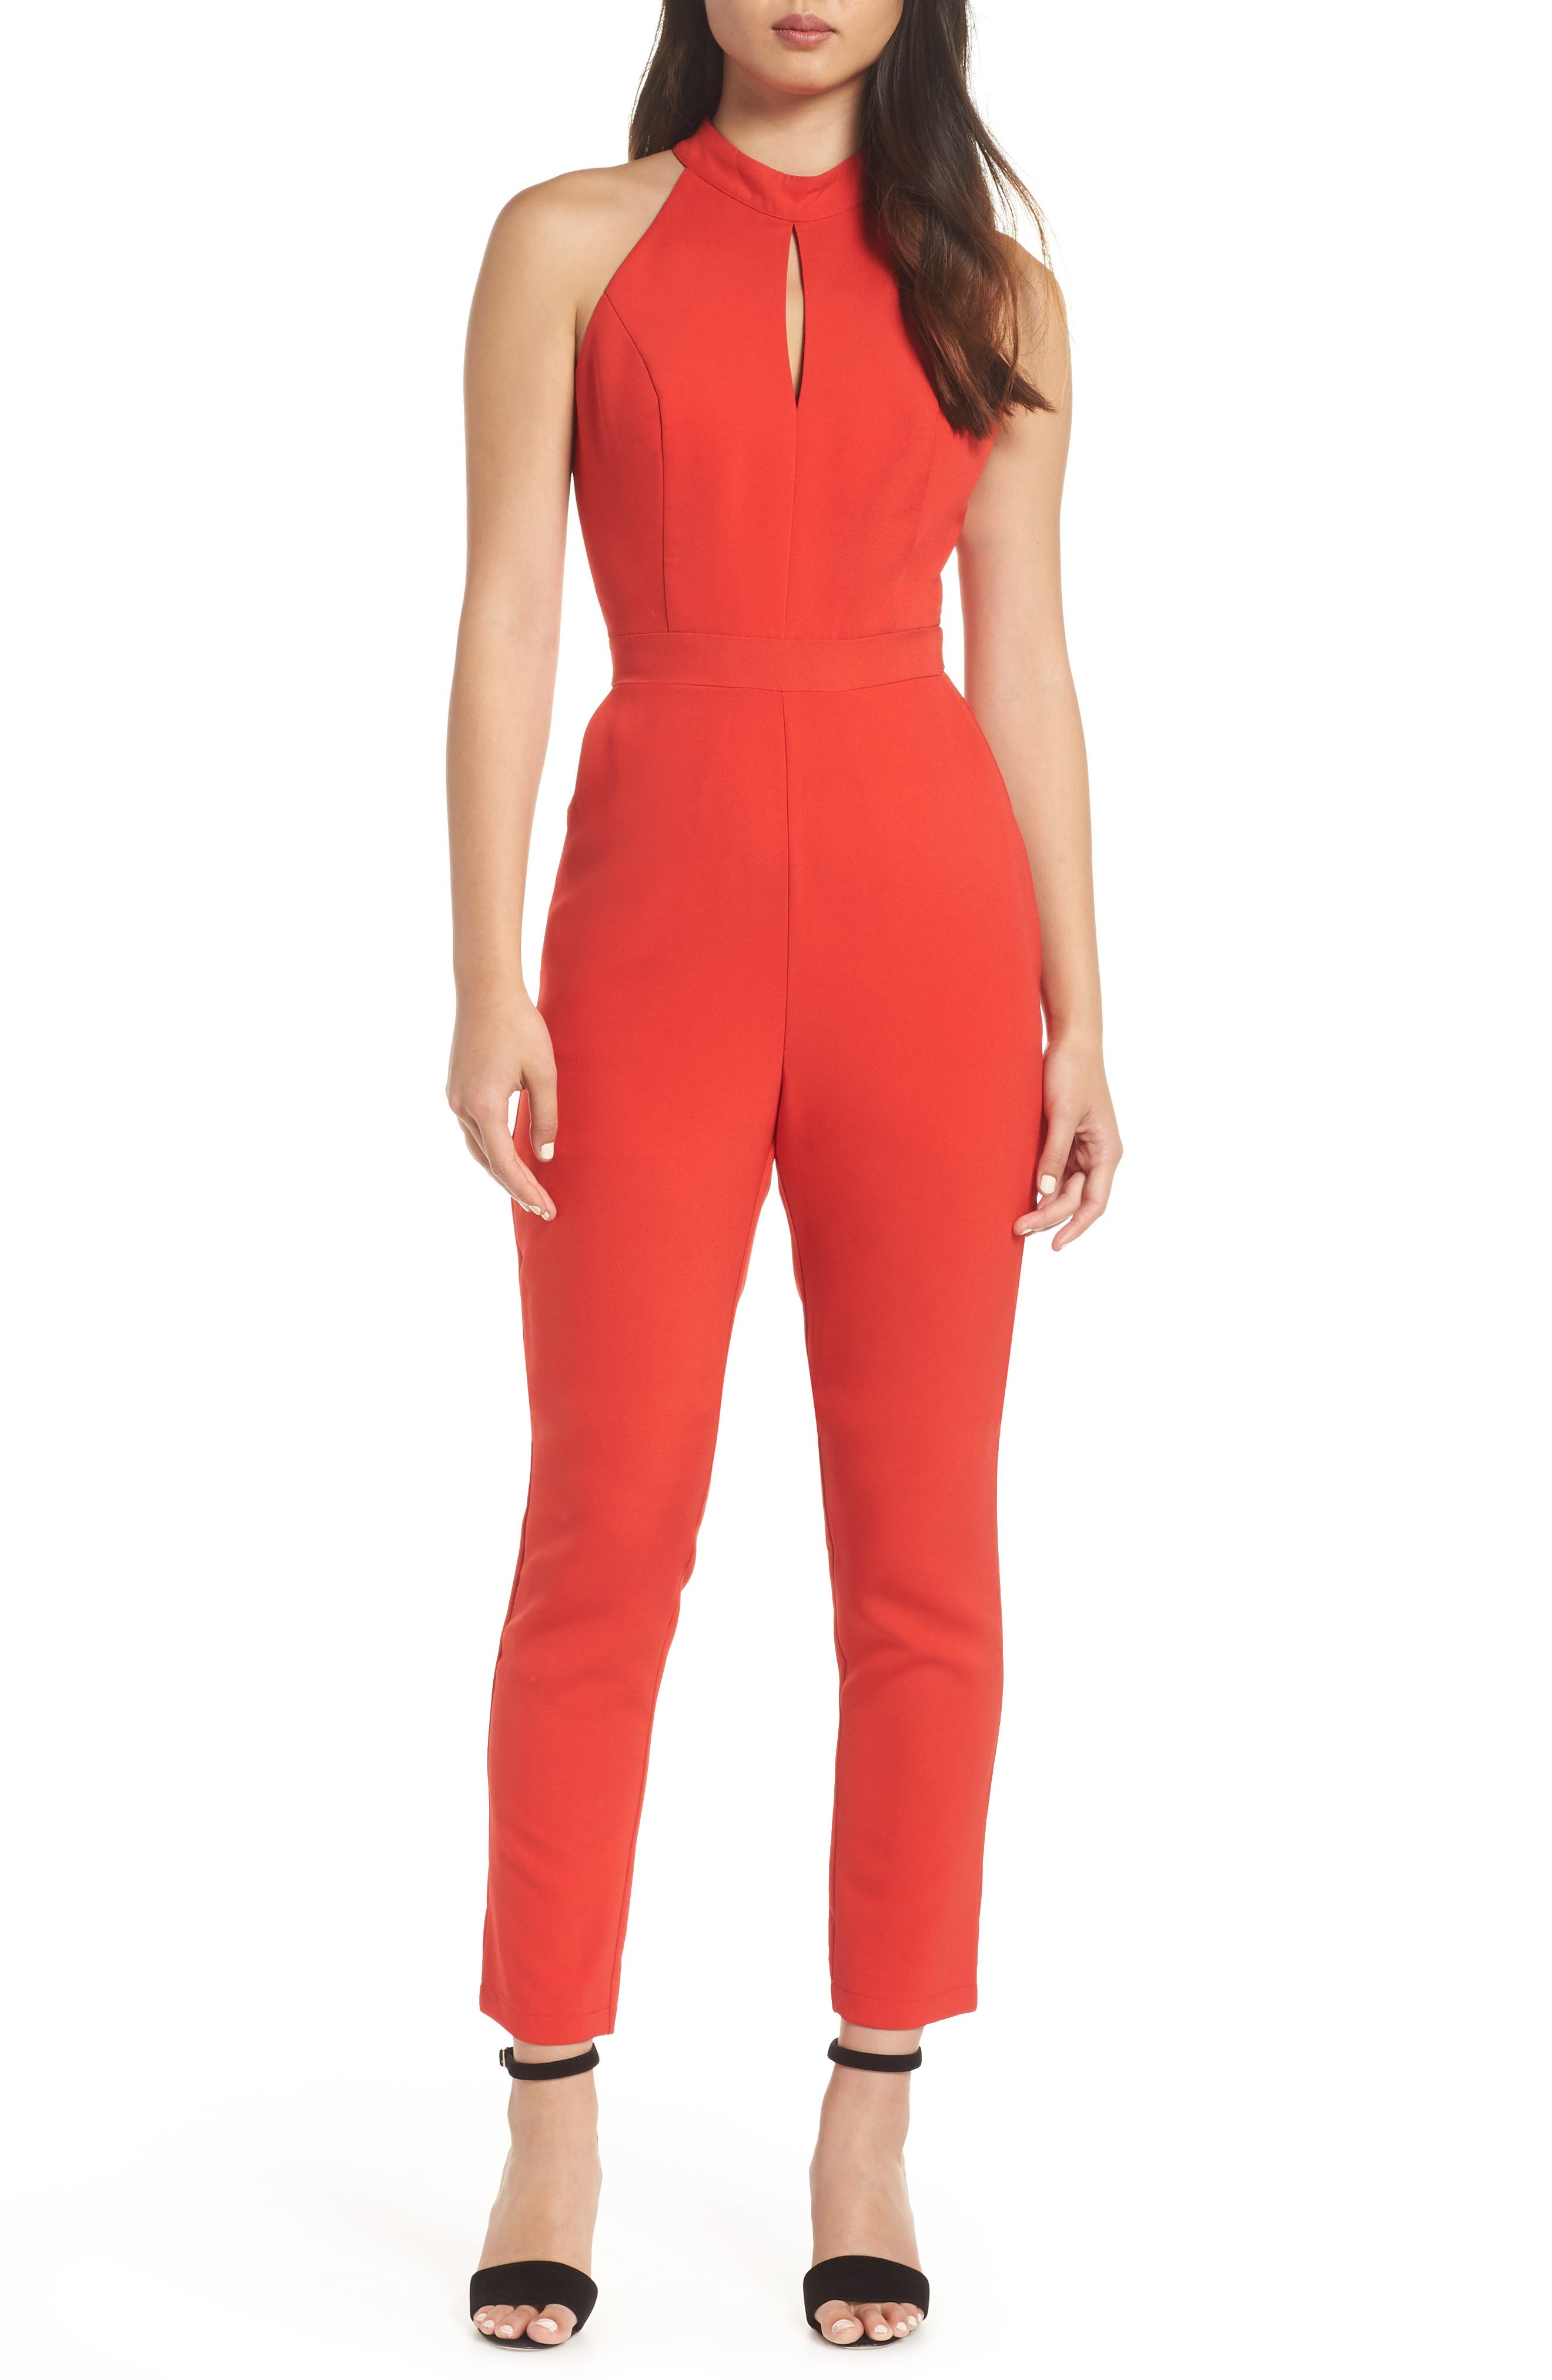 ADELYN RAE Shaylie Scalloped Back Jumpsuit, Main, color, 600